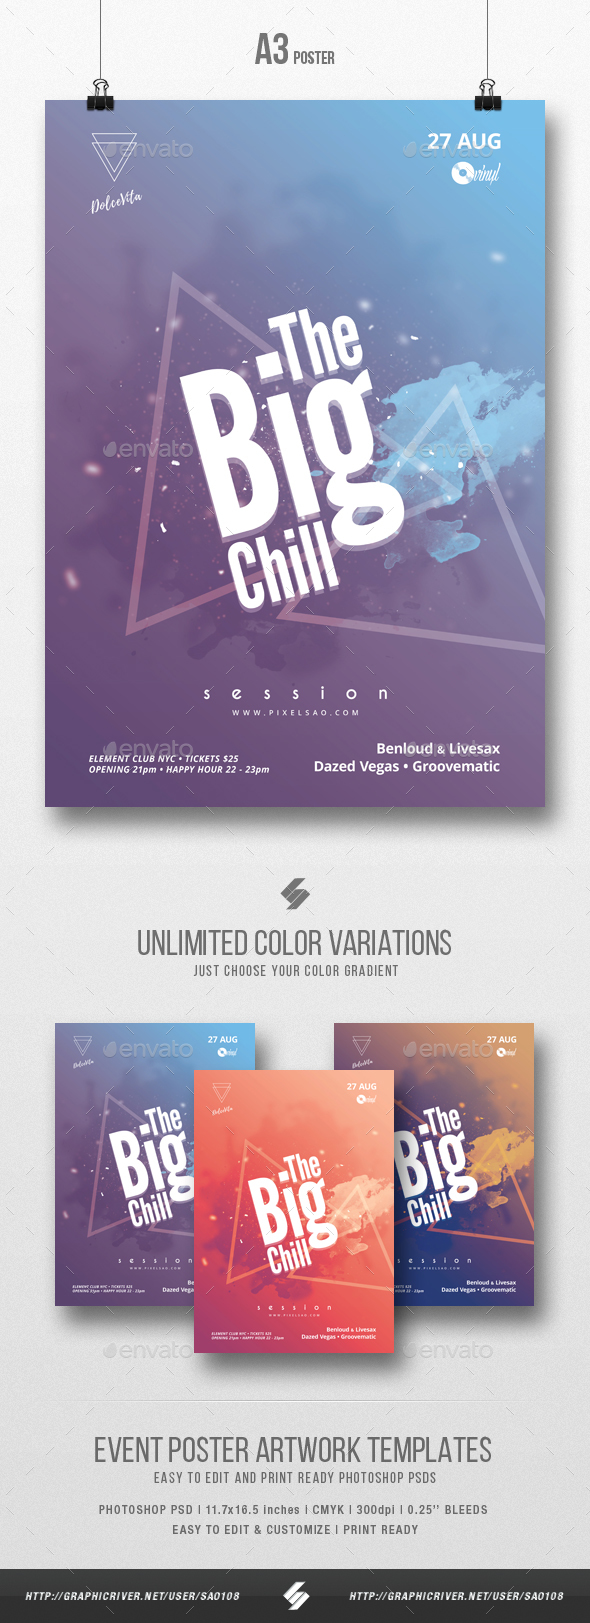 The Big Chill - Minimal Party Flyer / Poster Template A3 - Clubs & Parties Events